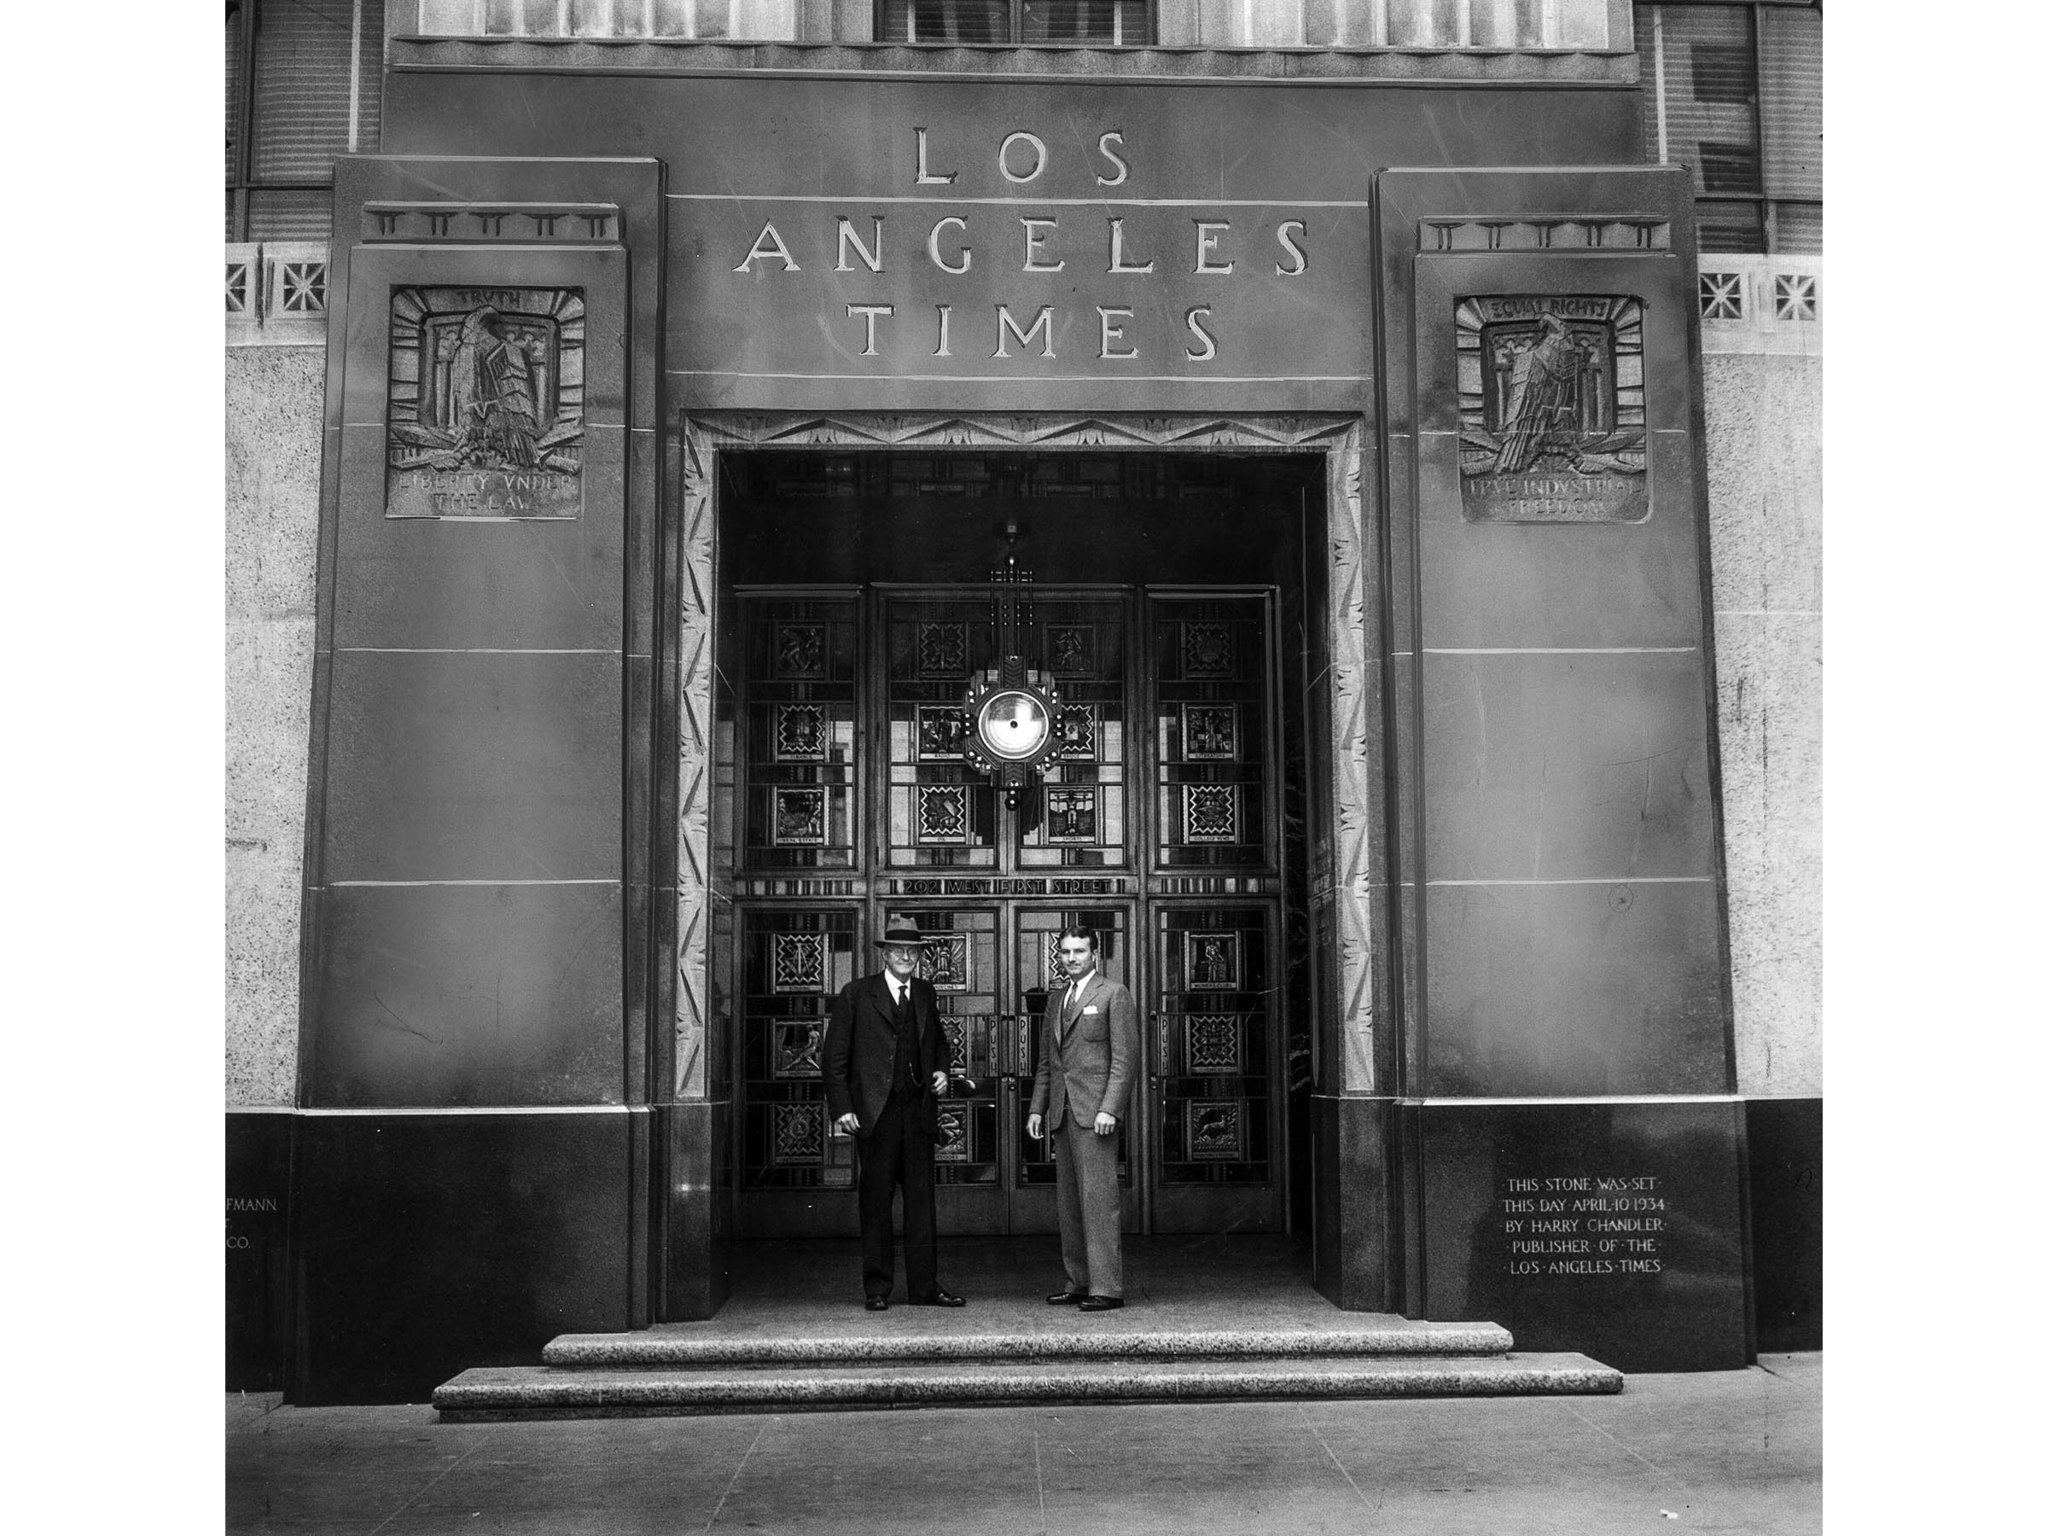 From the Archives: The Los Angeles Times building at 1st and Spring